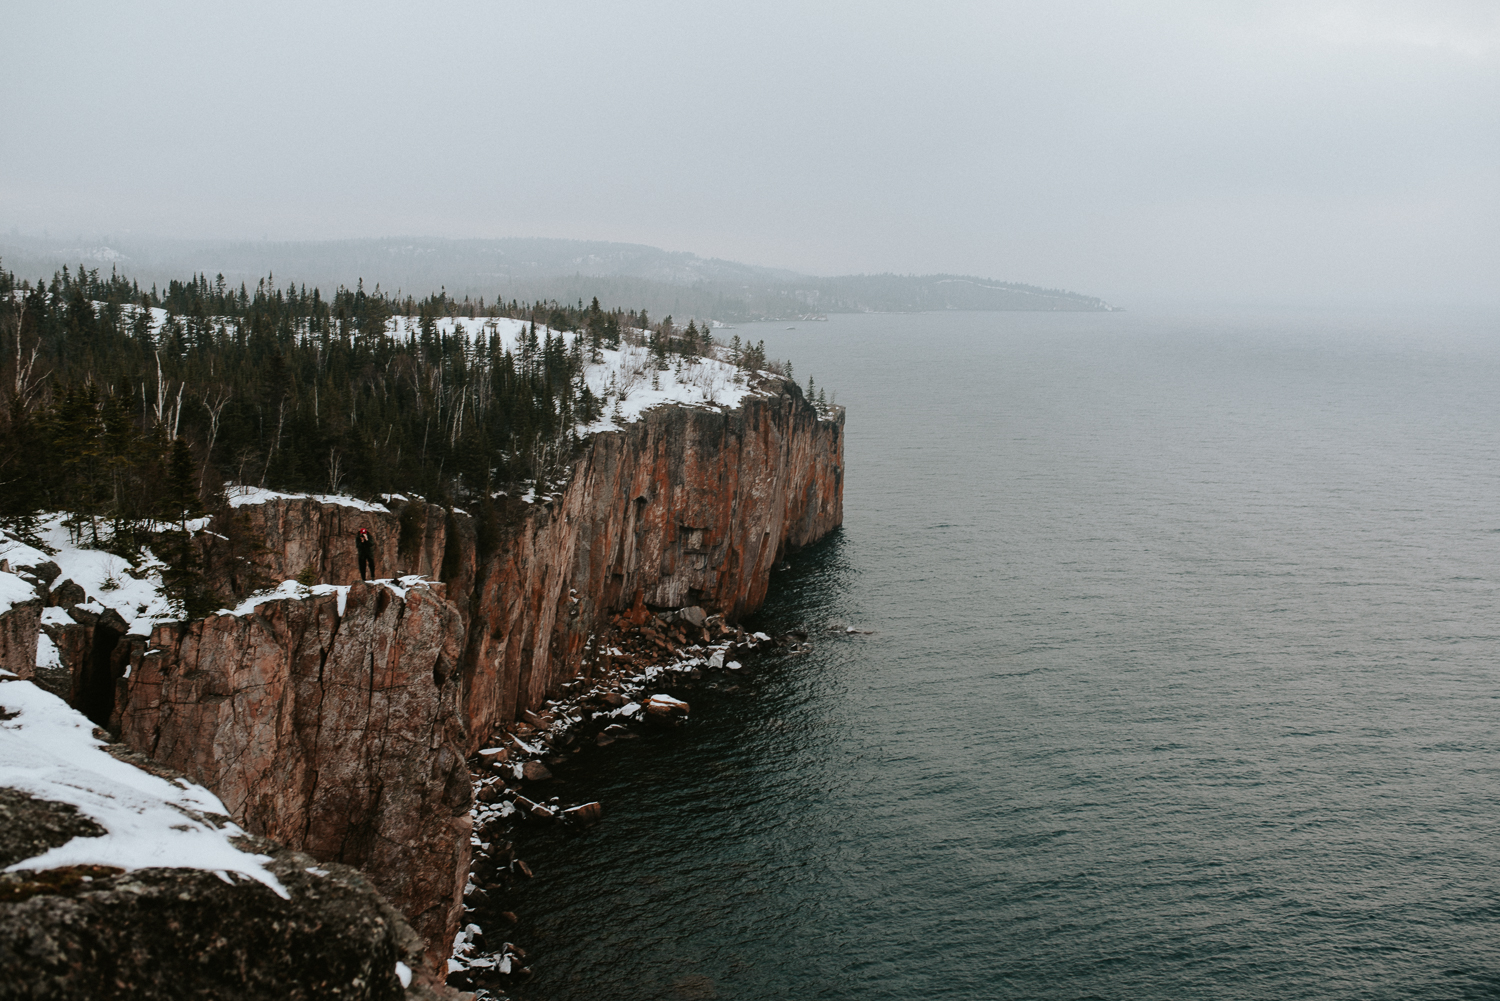 A winter scene as seen from the top of Palisade Head in Two Harbors, Minnesota.